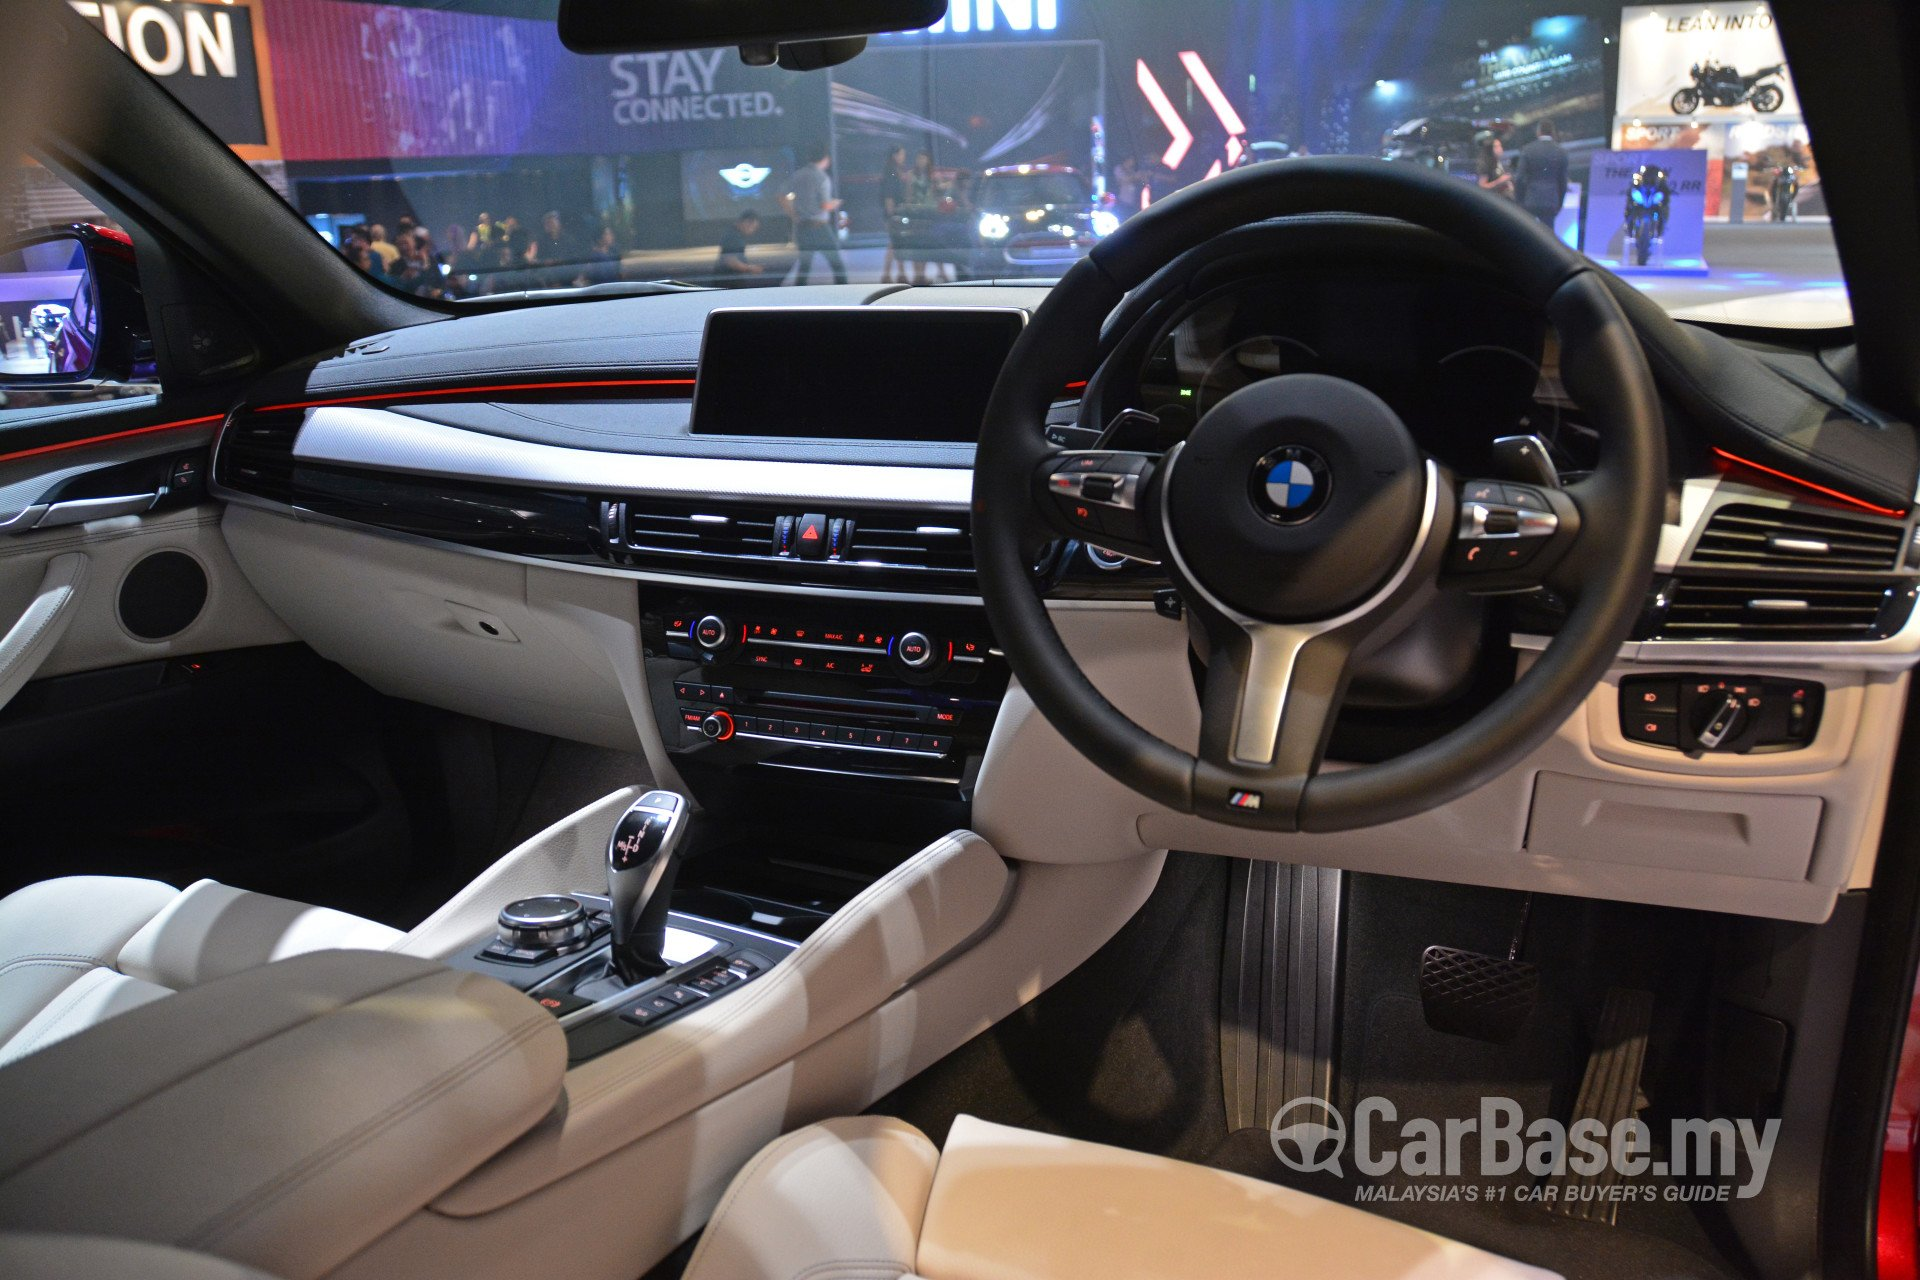 Bmw X6 F16 2015 Interior Image In Malaysia Reviews Specs Prices Carbase My